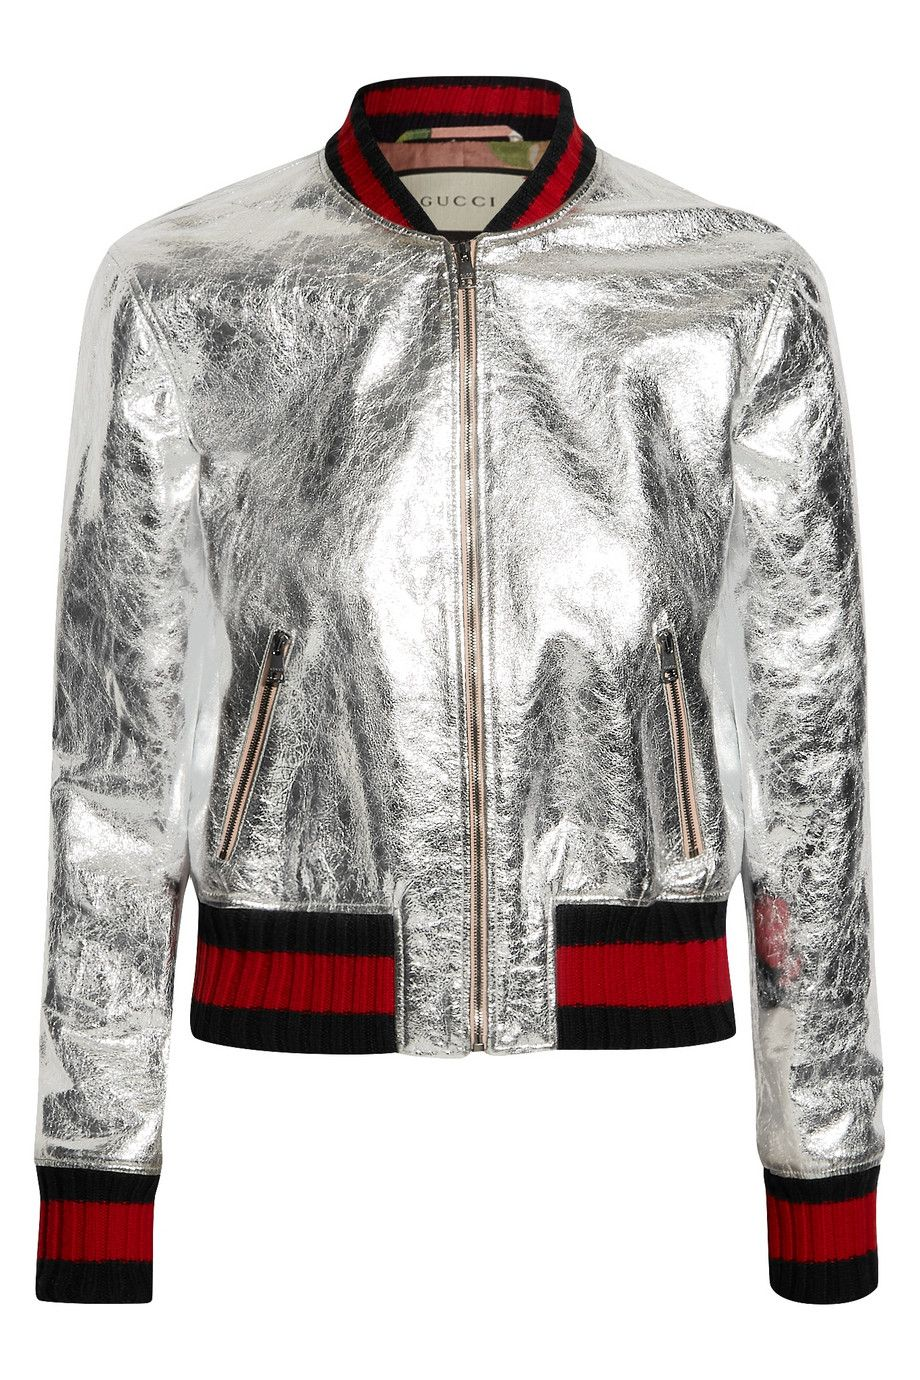 7b21baae4 Gucci - Metallic leather bomber jacket | Camperas Cuero | Moda, Ropa ...